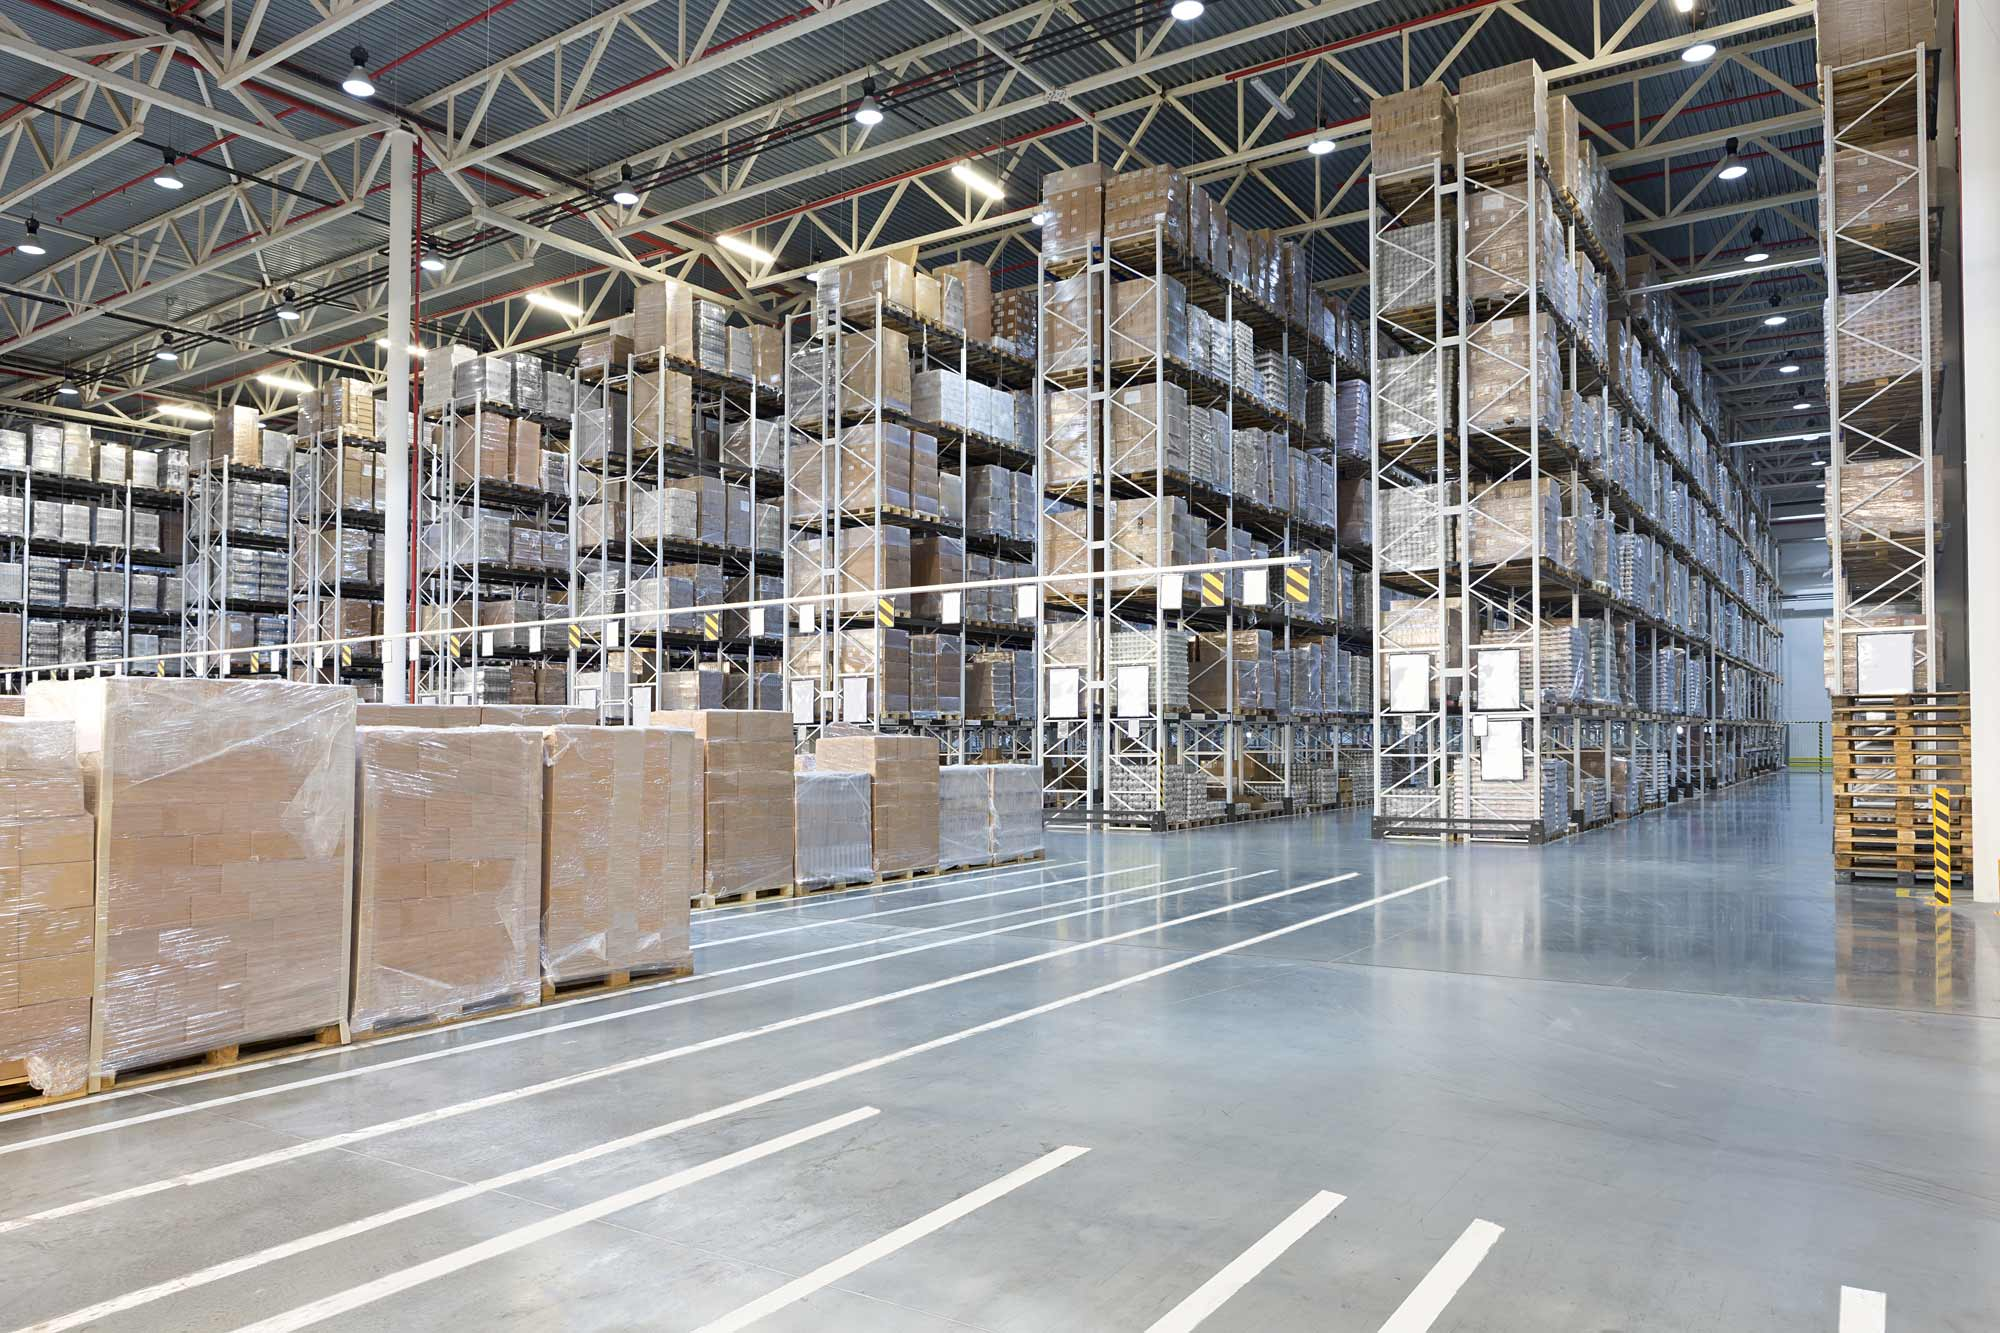 REGIONAL WAREHOUSE/FULFILLMENT FACILITIES